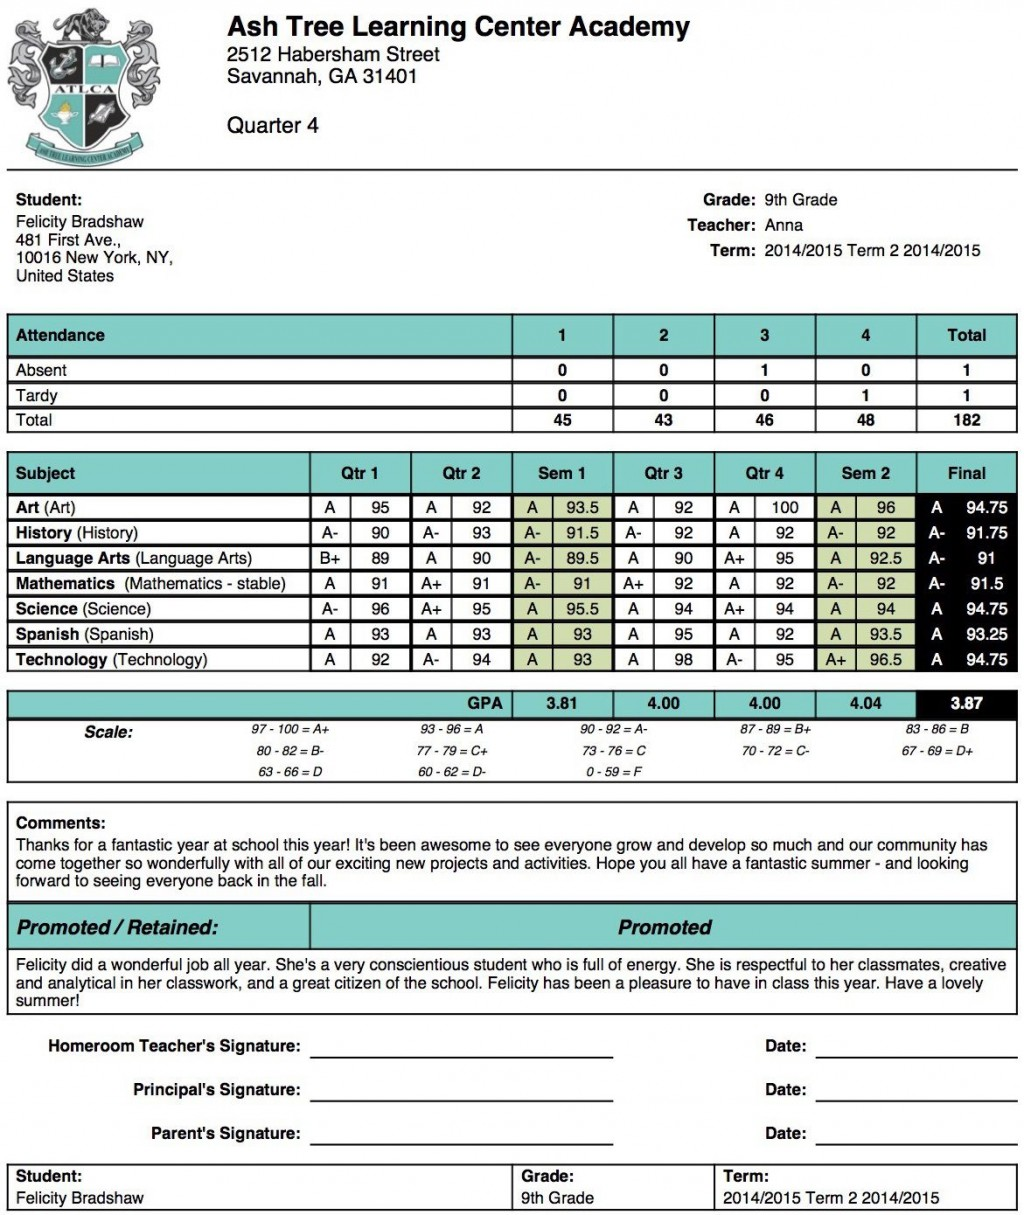 006 Awesome Middle School Report Card Template Free Inspiration Large